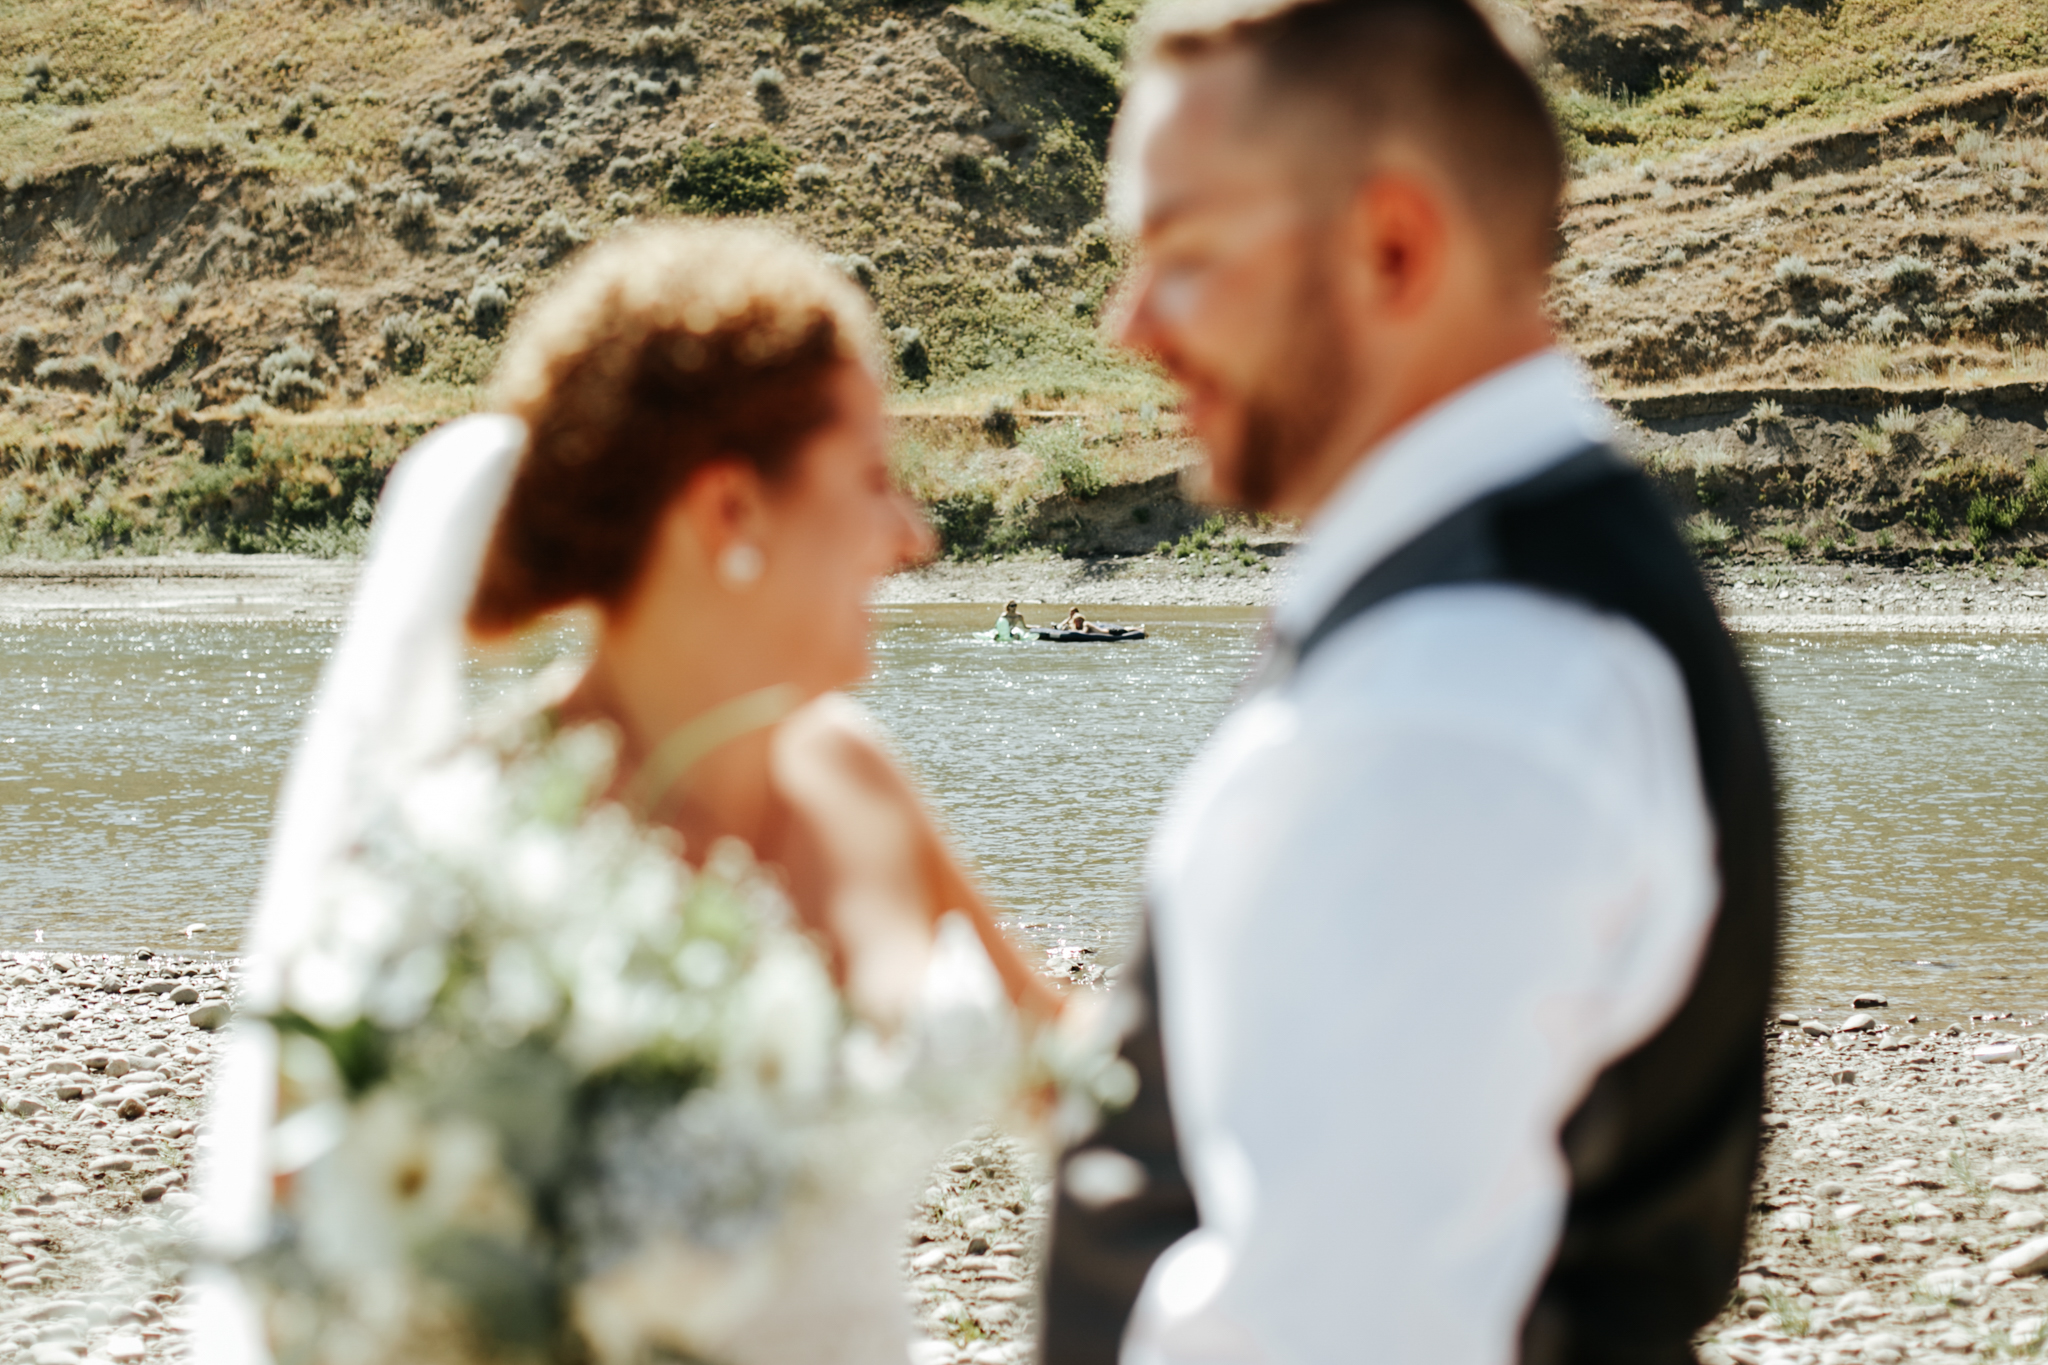 lethbridge-wedding-photographer-love-and-be-loved-photography-trent-danielle-galt-reception-picture-image-photo-130.jpg